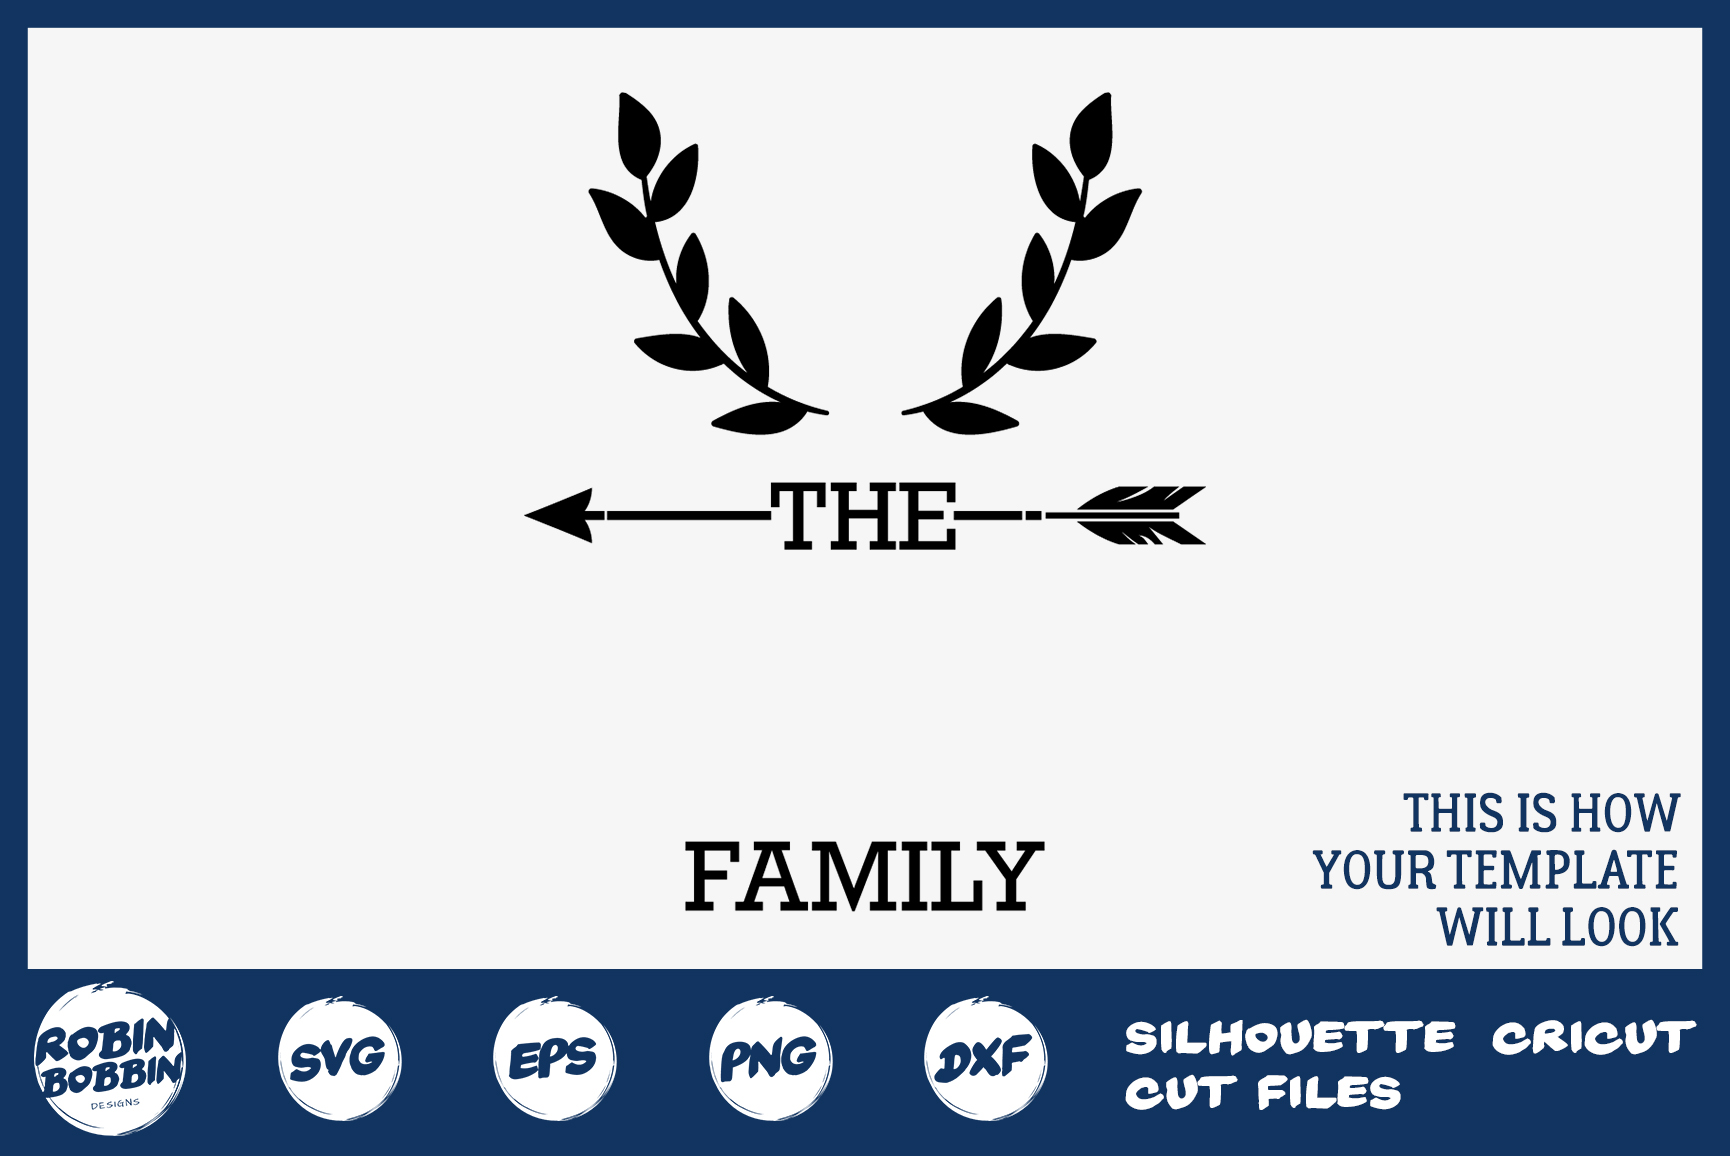 Family SVG, Newlyweds SVG, Family Poster SVG, Printable File example image 2